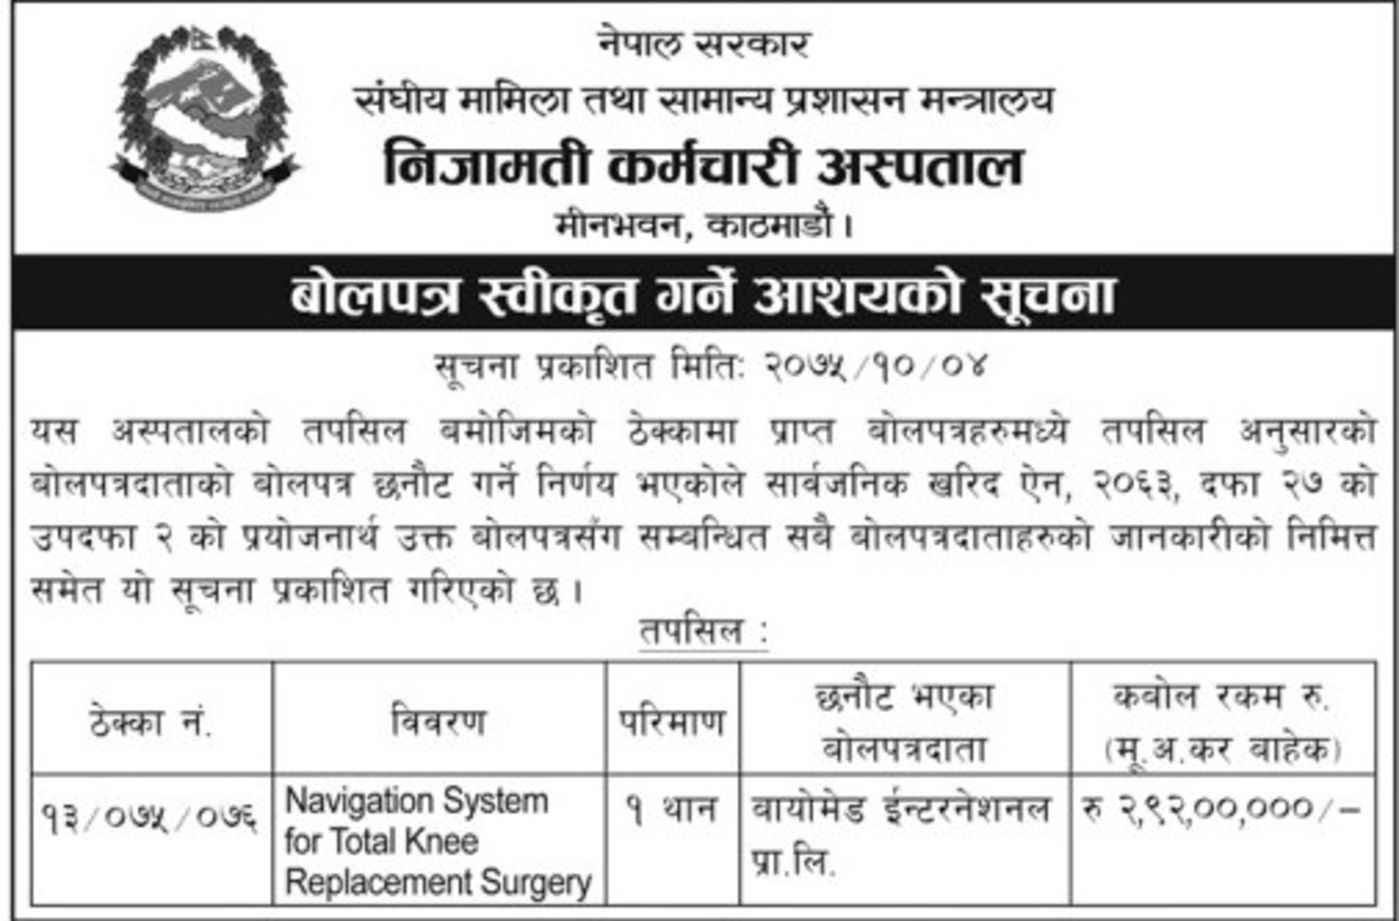 Bids and Tenders Nepal - Letter Of Intent - Navigation